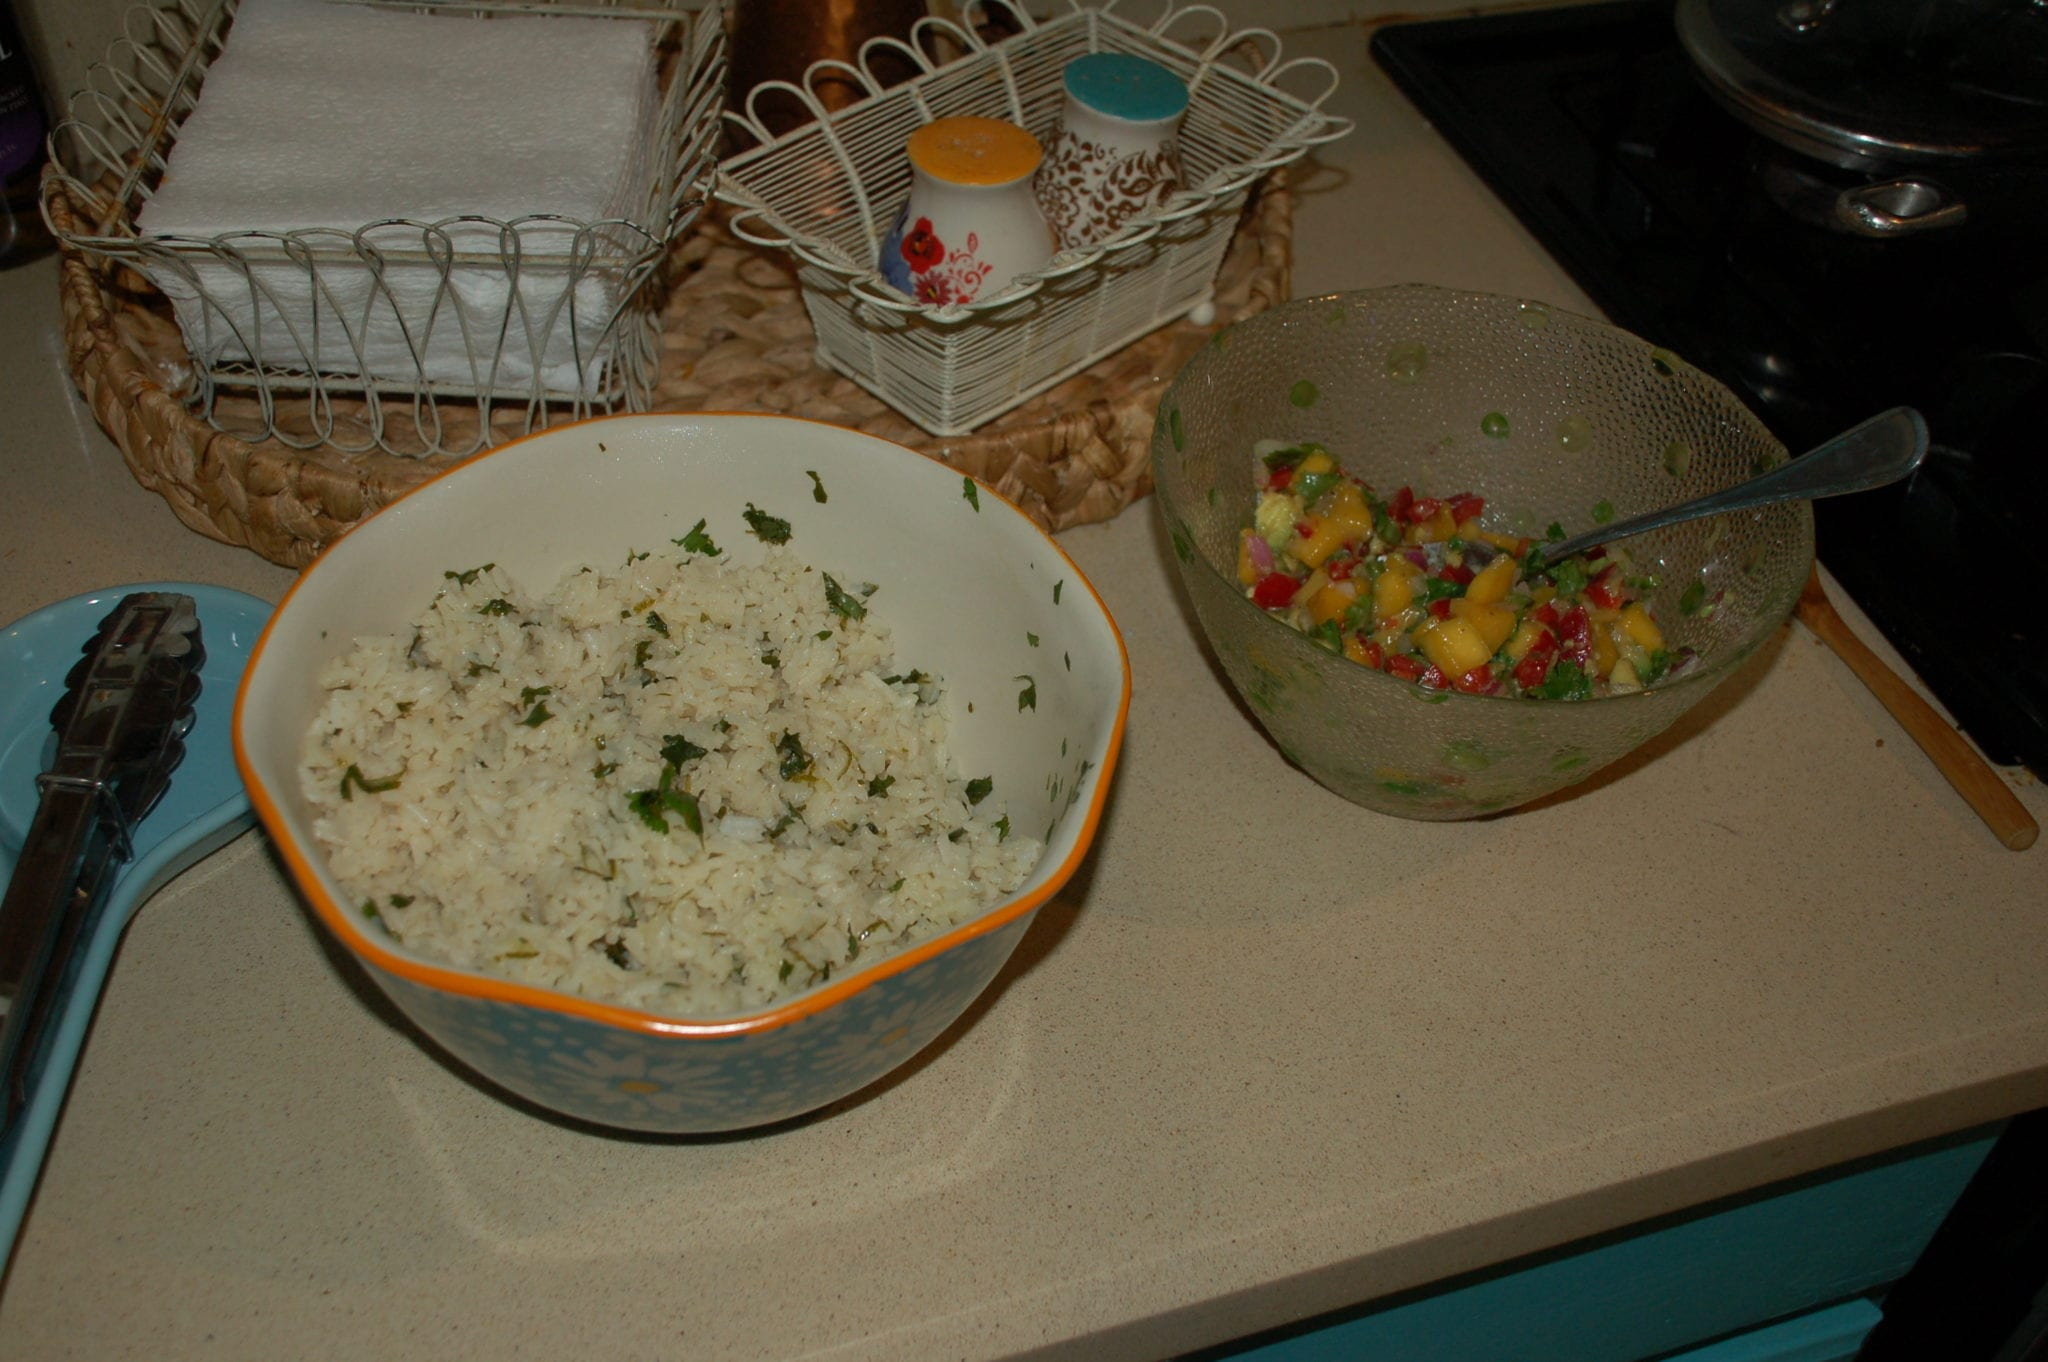 Hosting a girls' night dinner and pampering. Cilantro lime rice and mango lime salsa. Tabitha Dumas